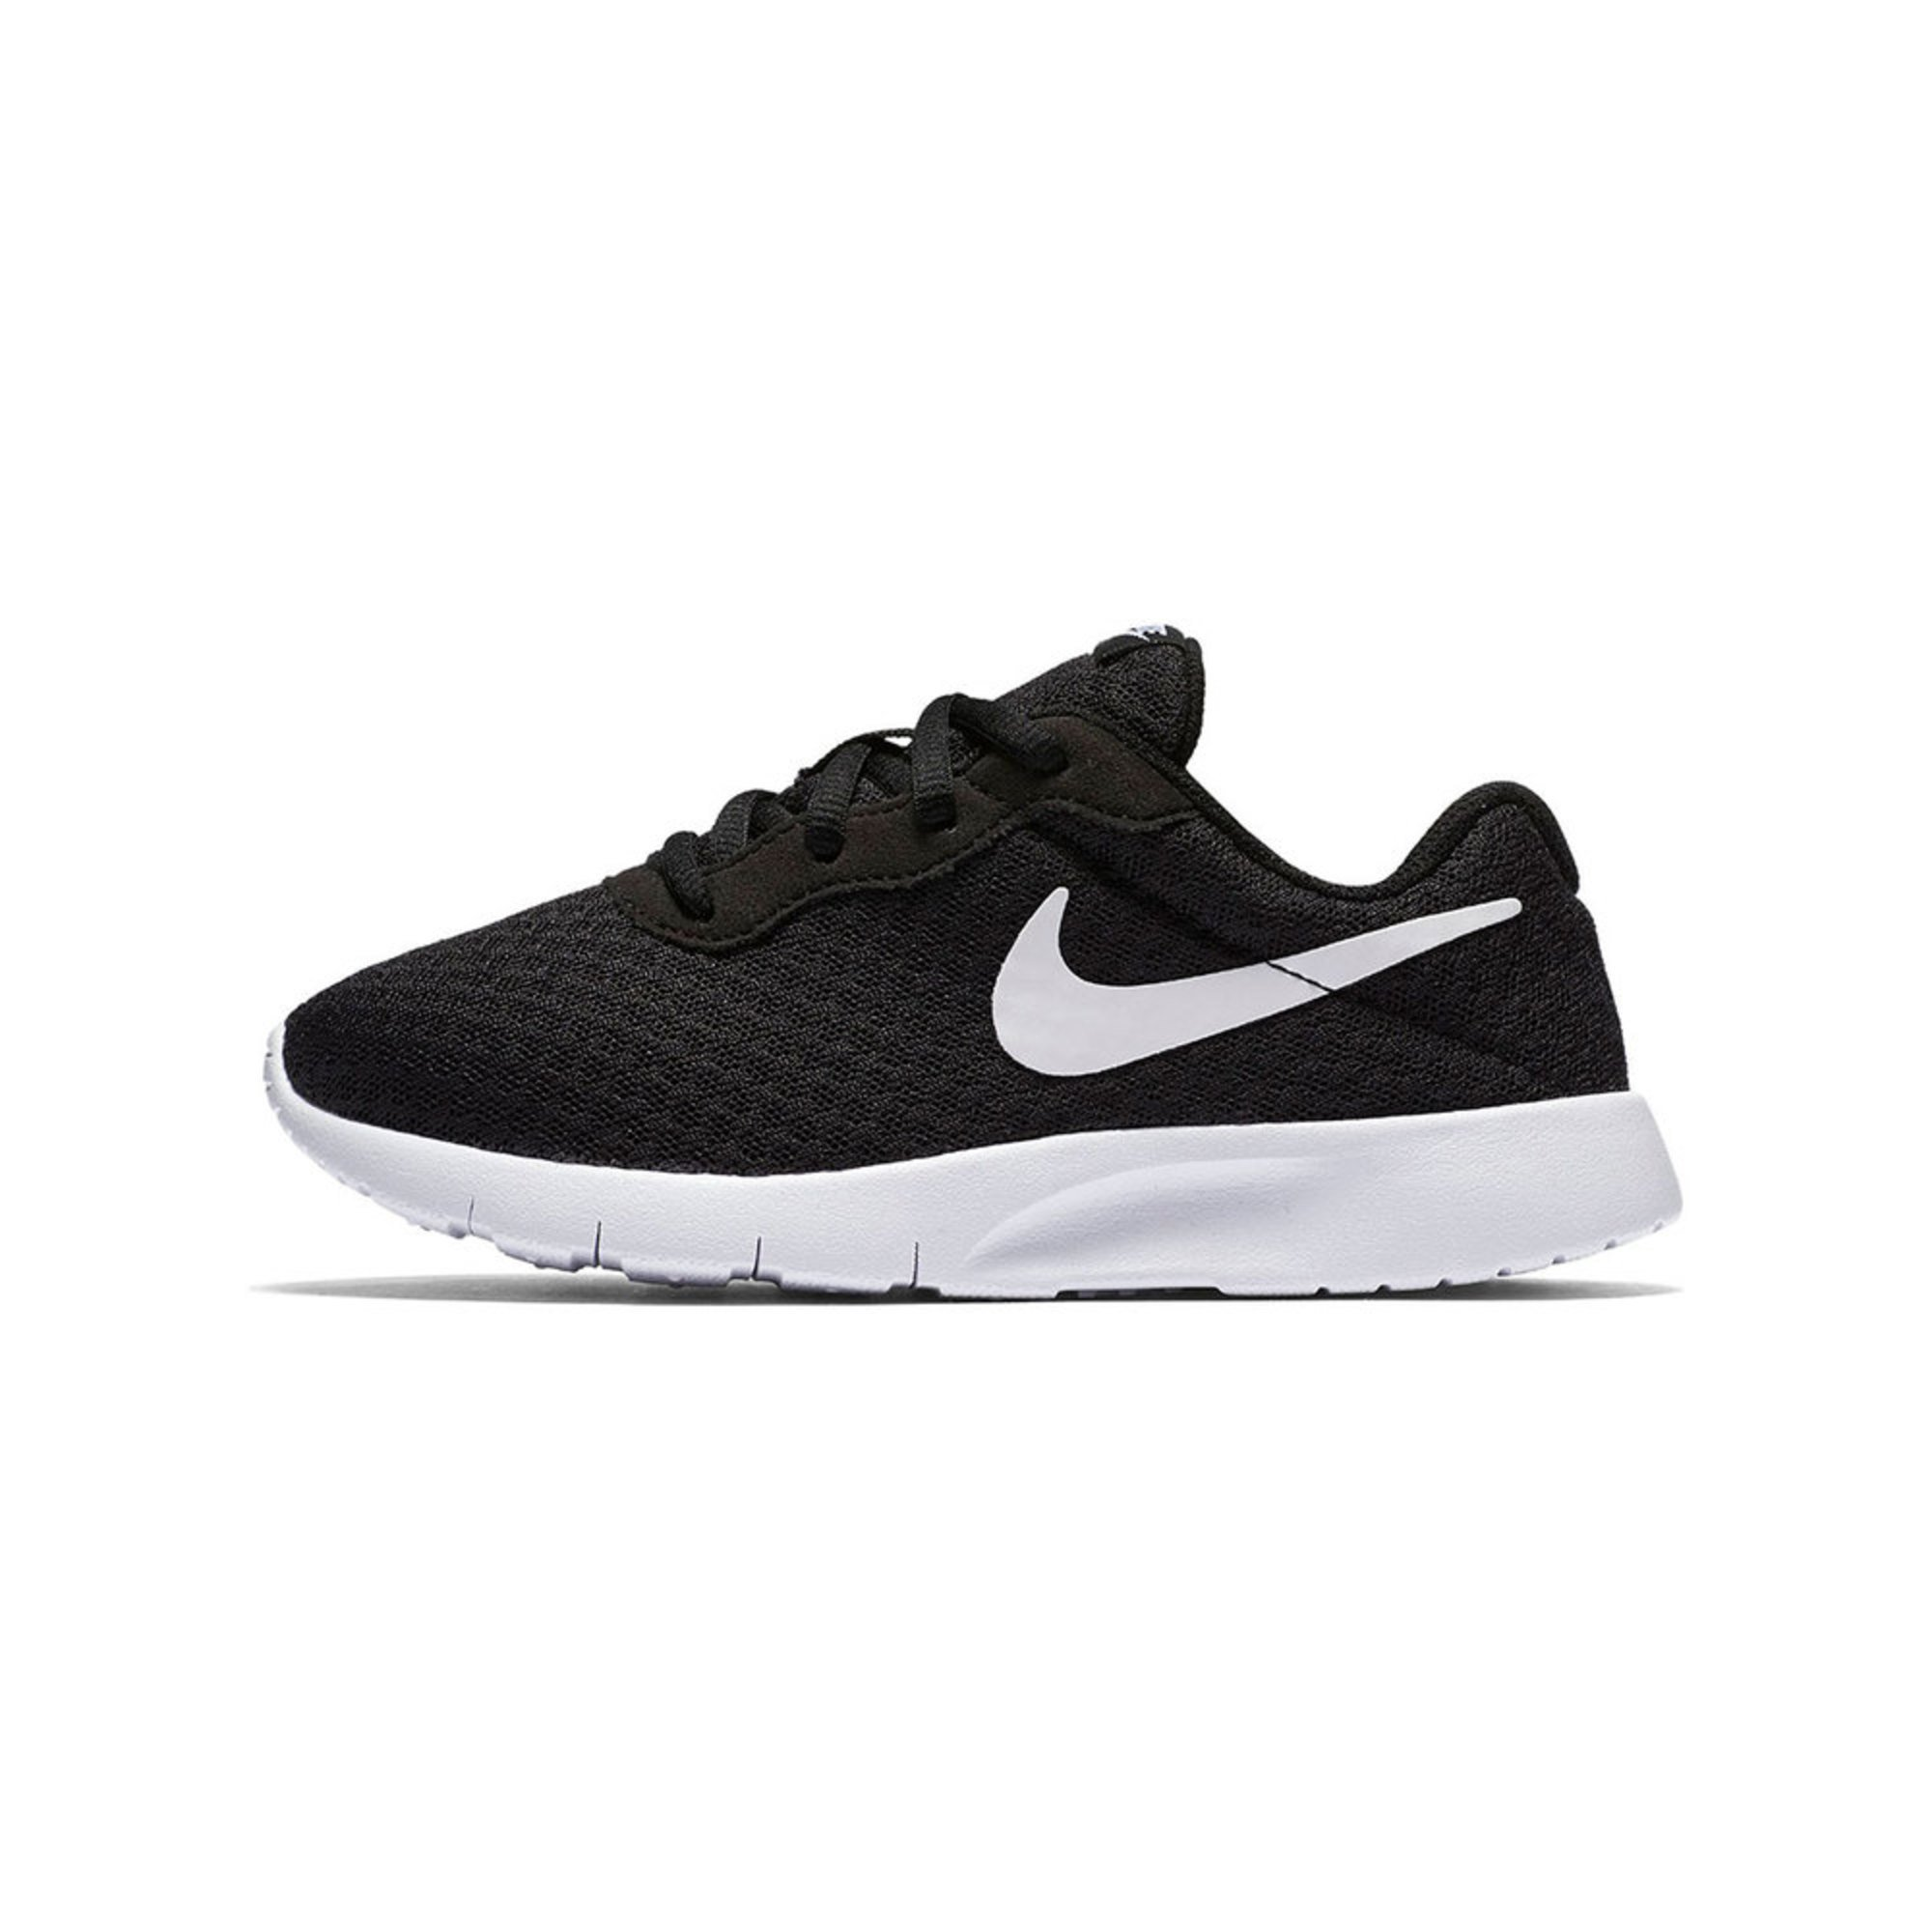 9775df44474d Nike. Nike Boys Tanjun Running Shoe (Little ...